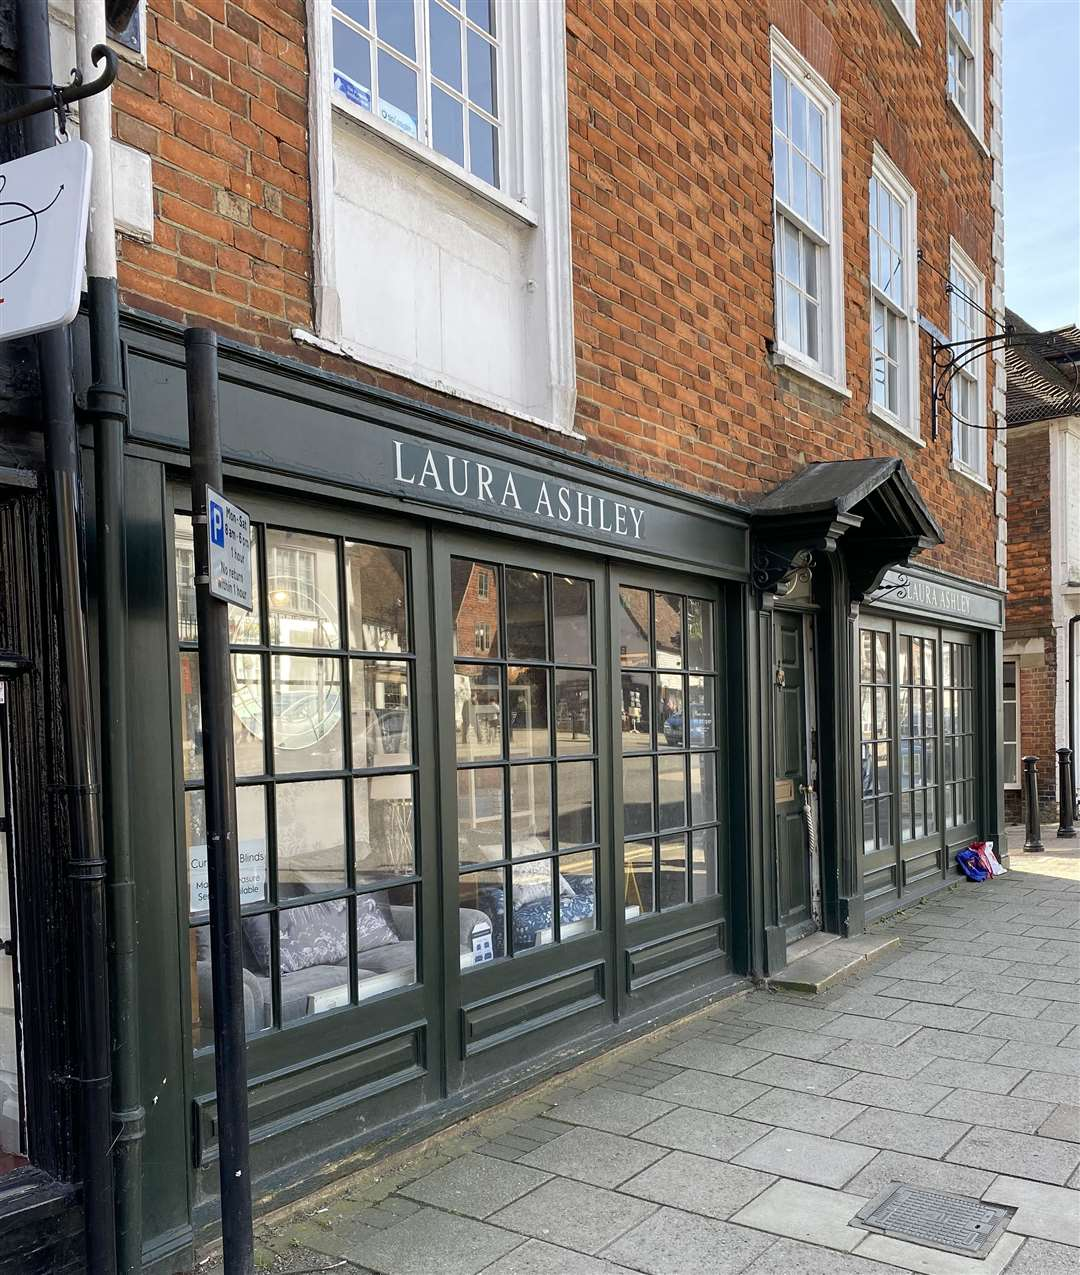 The Laura Ashley shop in Tenterden was still open earlier today